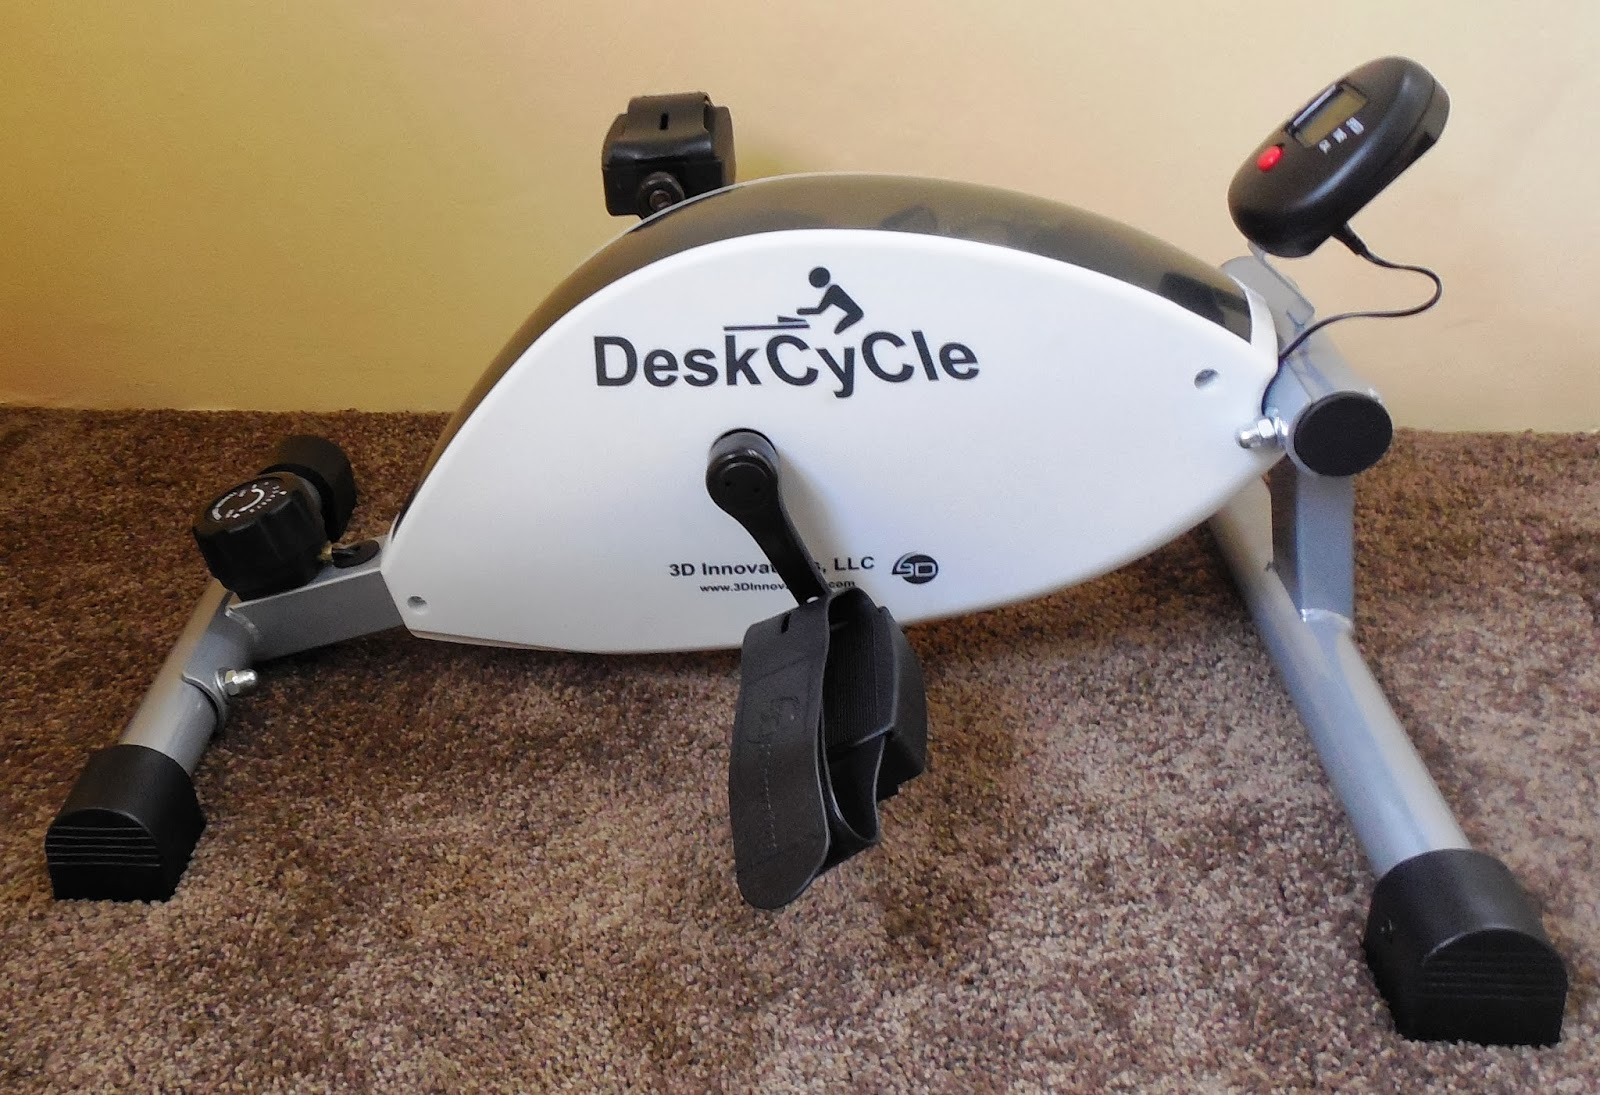 Deskcycle